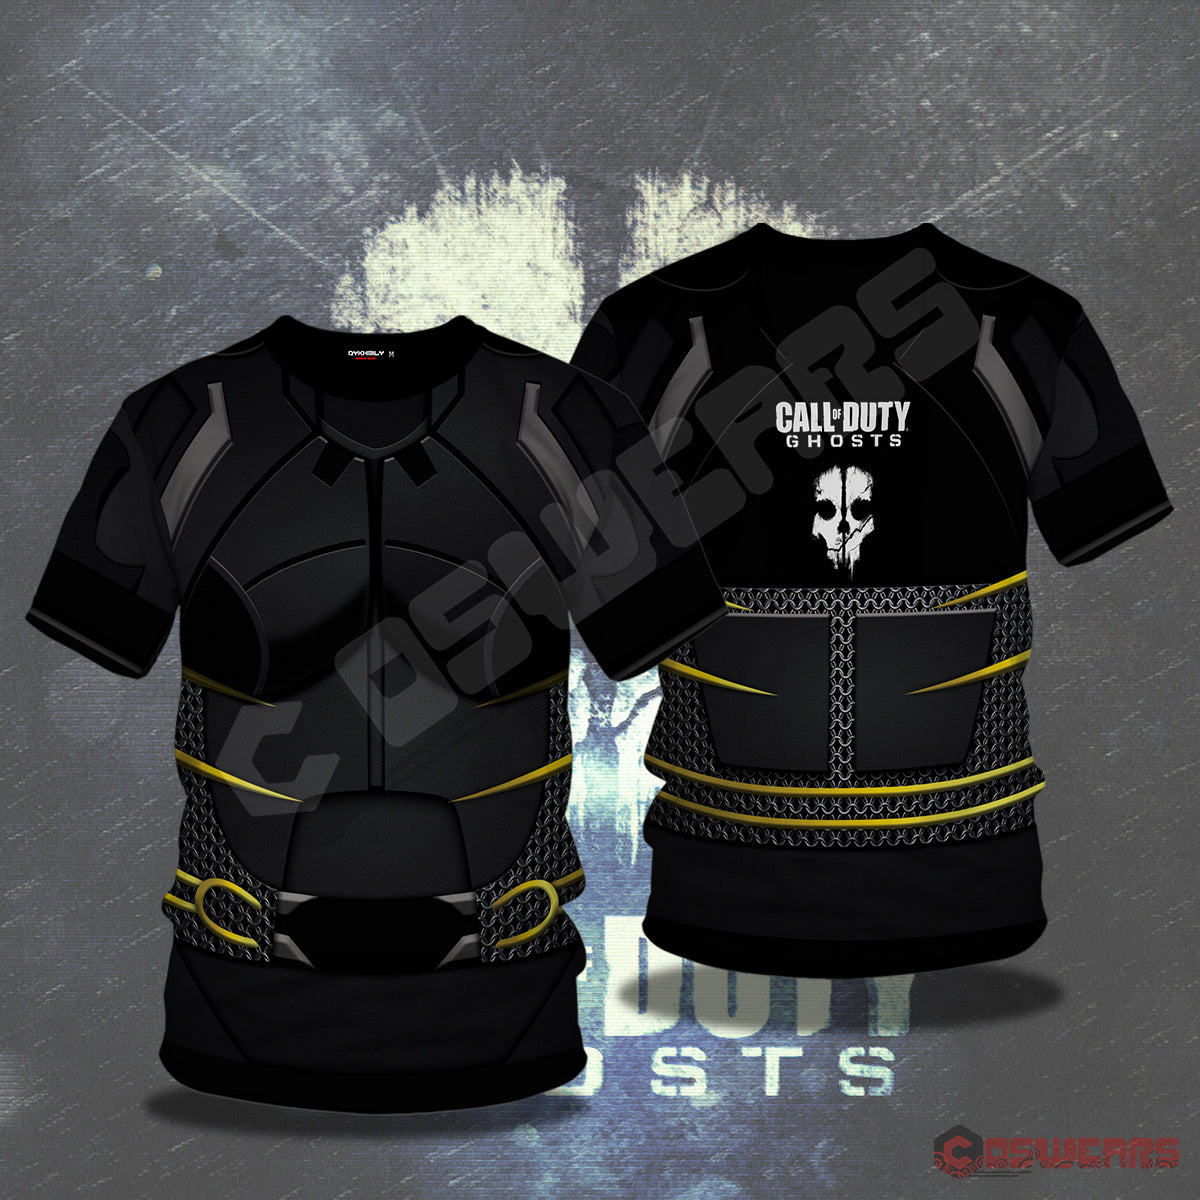 Call of Duty Sneaking Suit Inspired T-Shirt